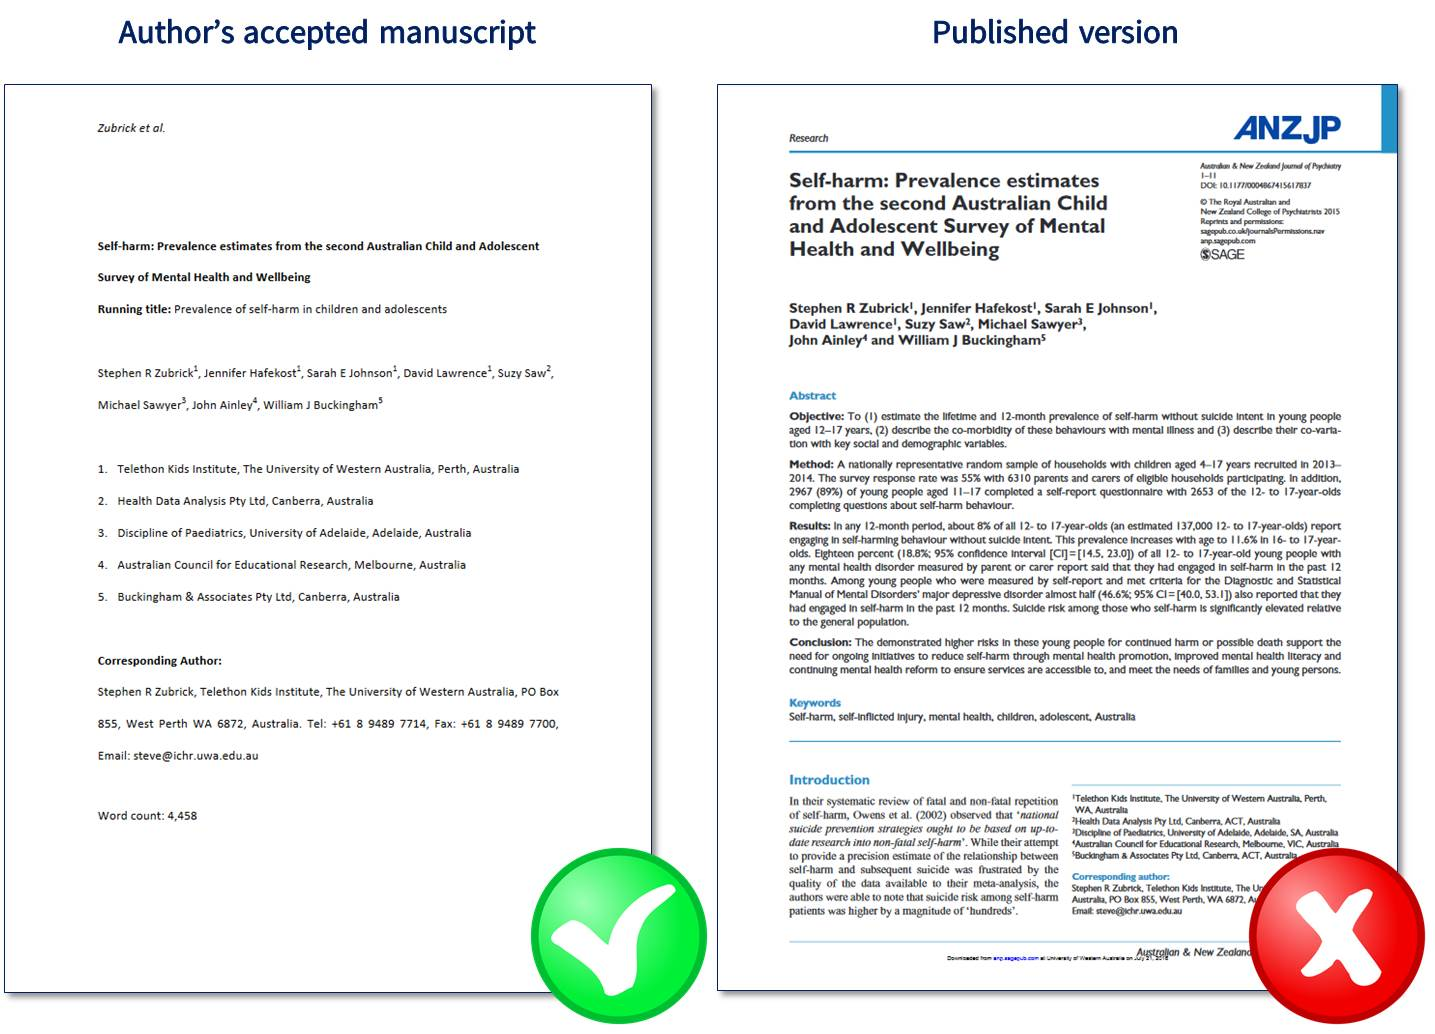 Author's accepted manuscript versus published version